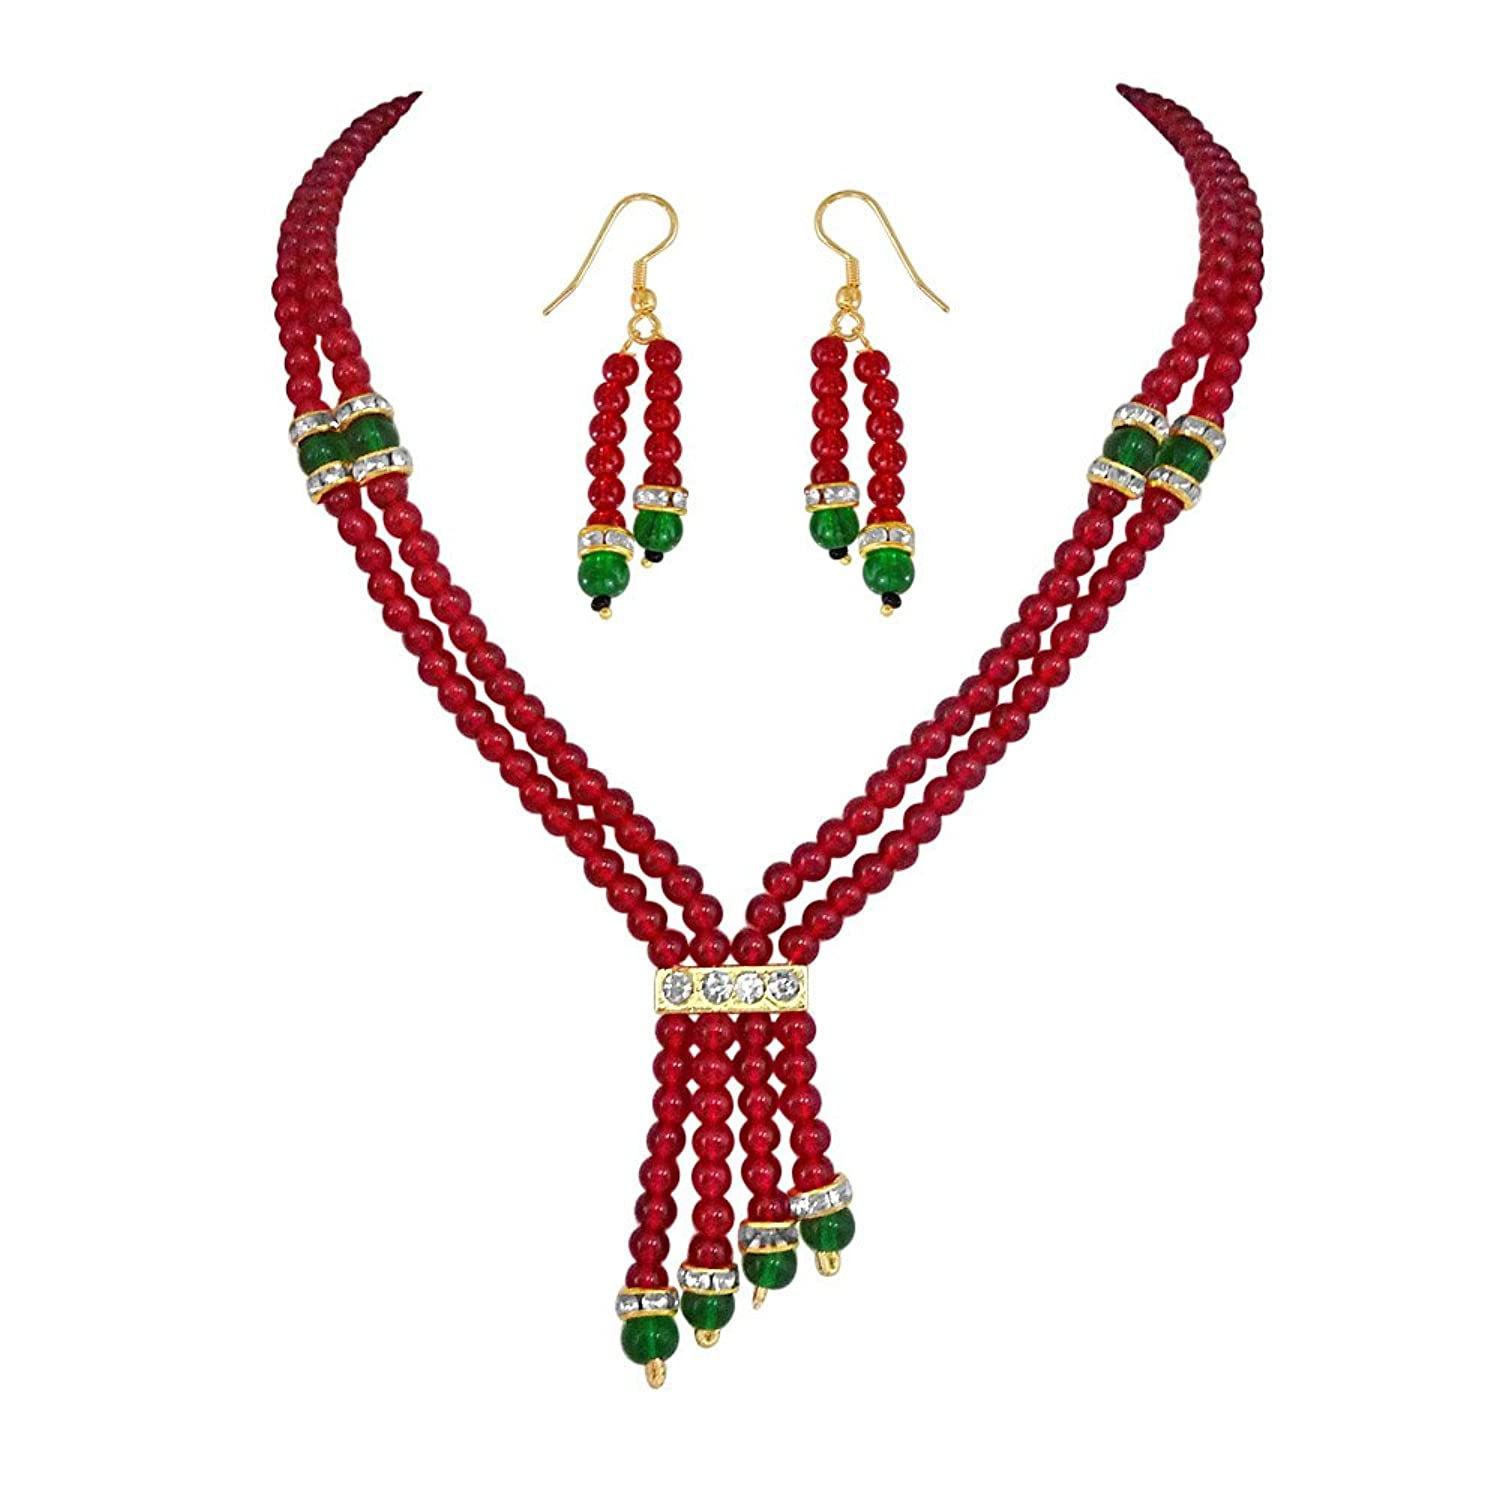 vegas image red novelty necklace jewelry rio for beads making s is costume loading las itm vintage jewellery